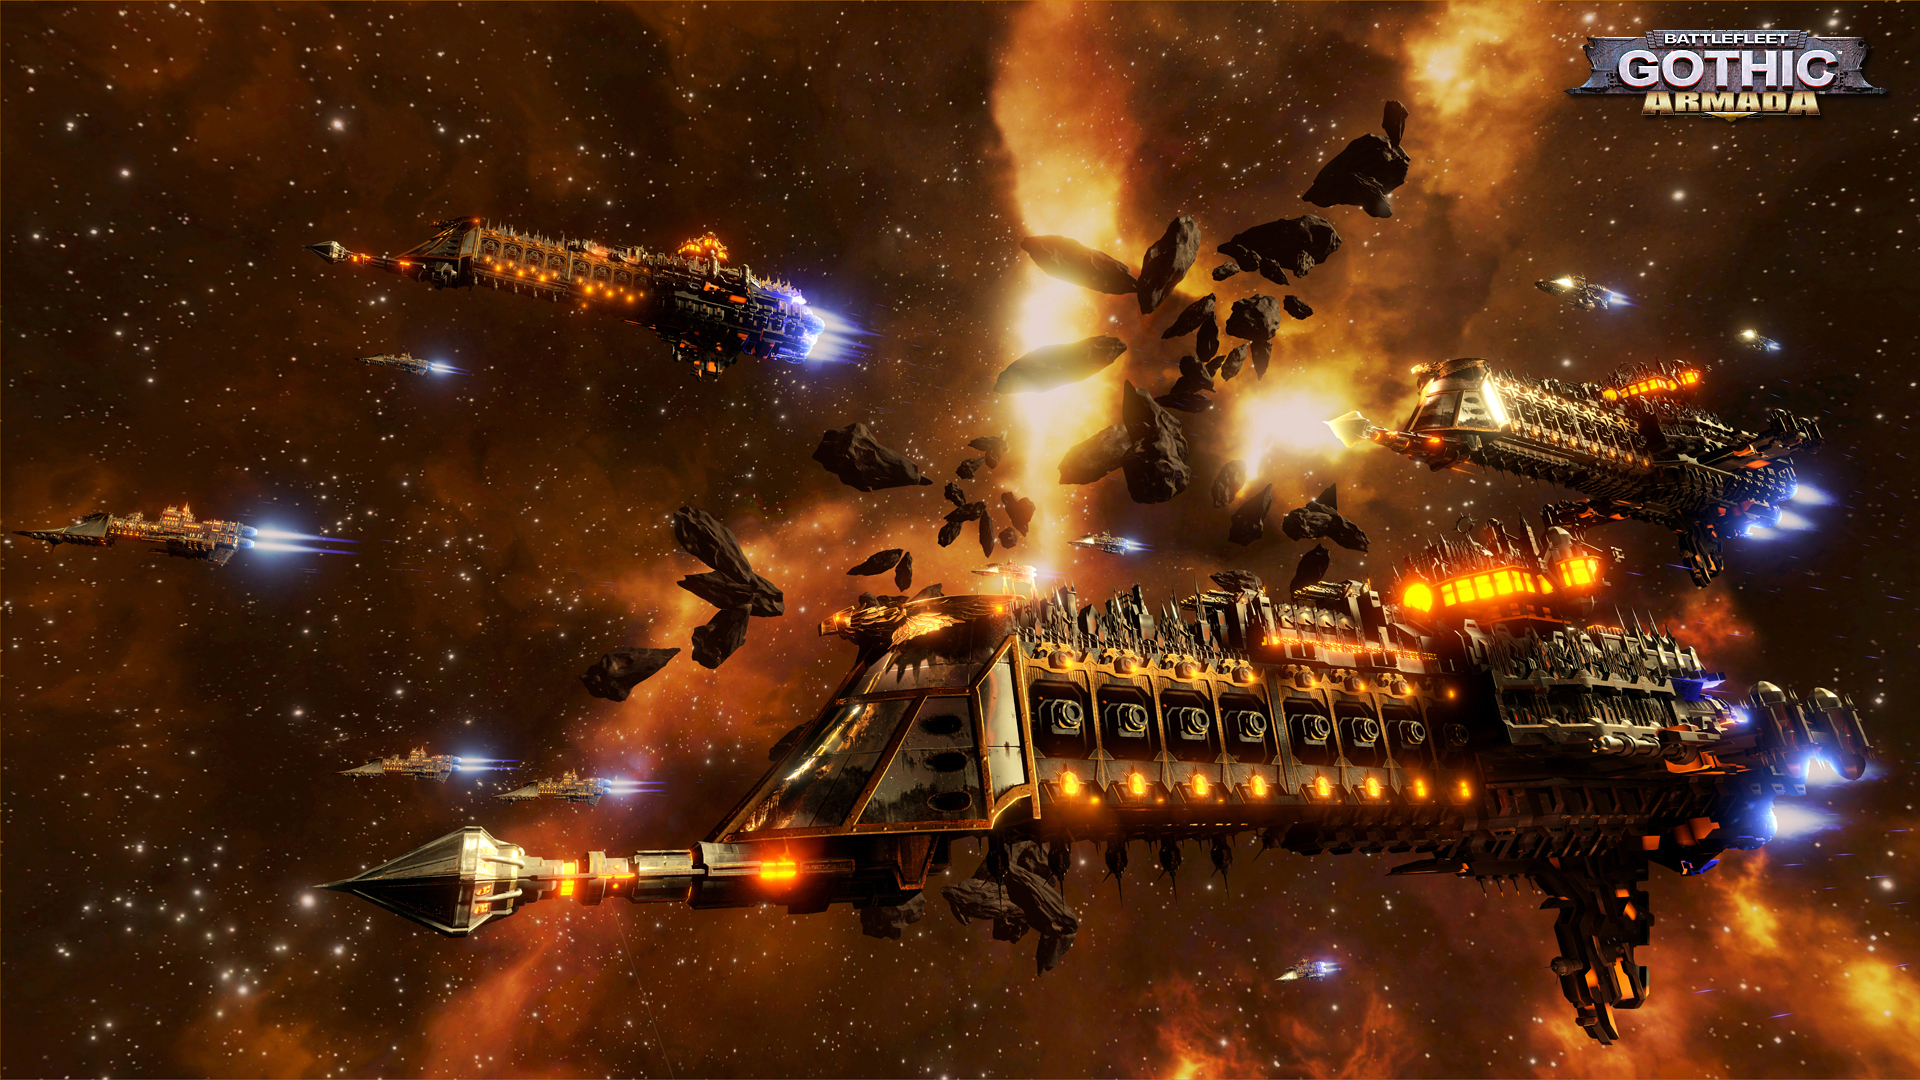 Battlefleet Gothic: Armada, one of the more successful Warhammer related titles.